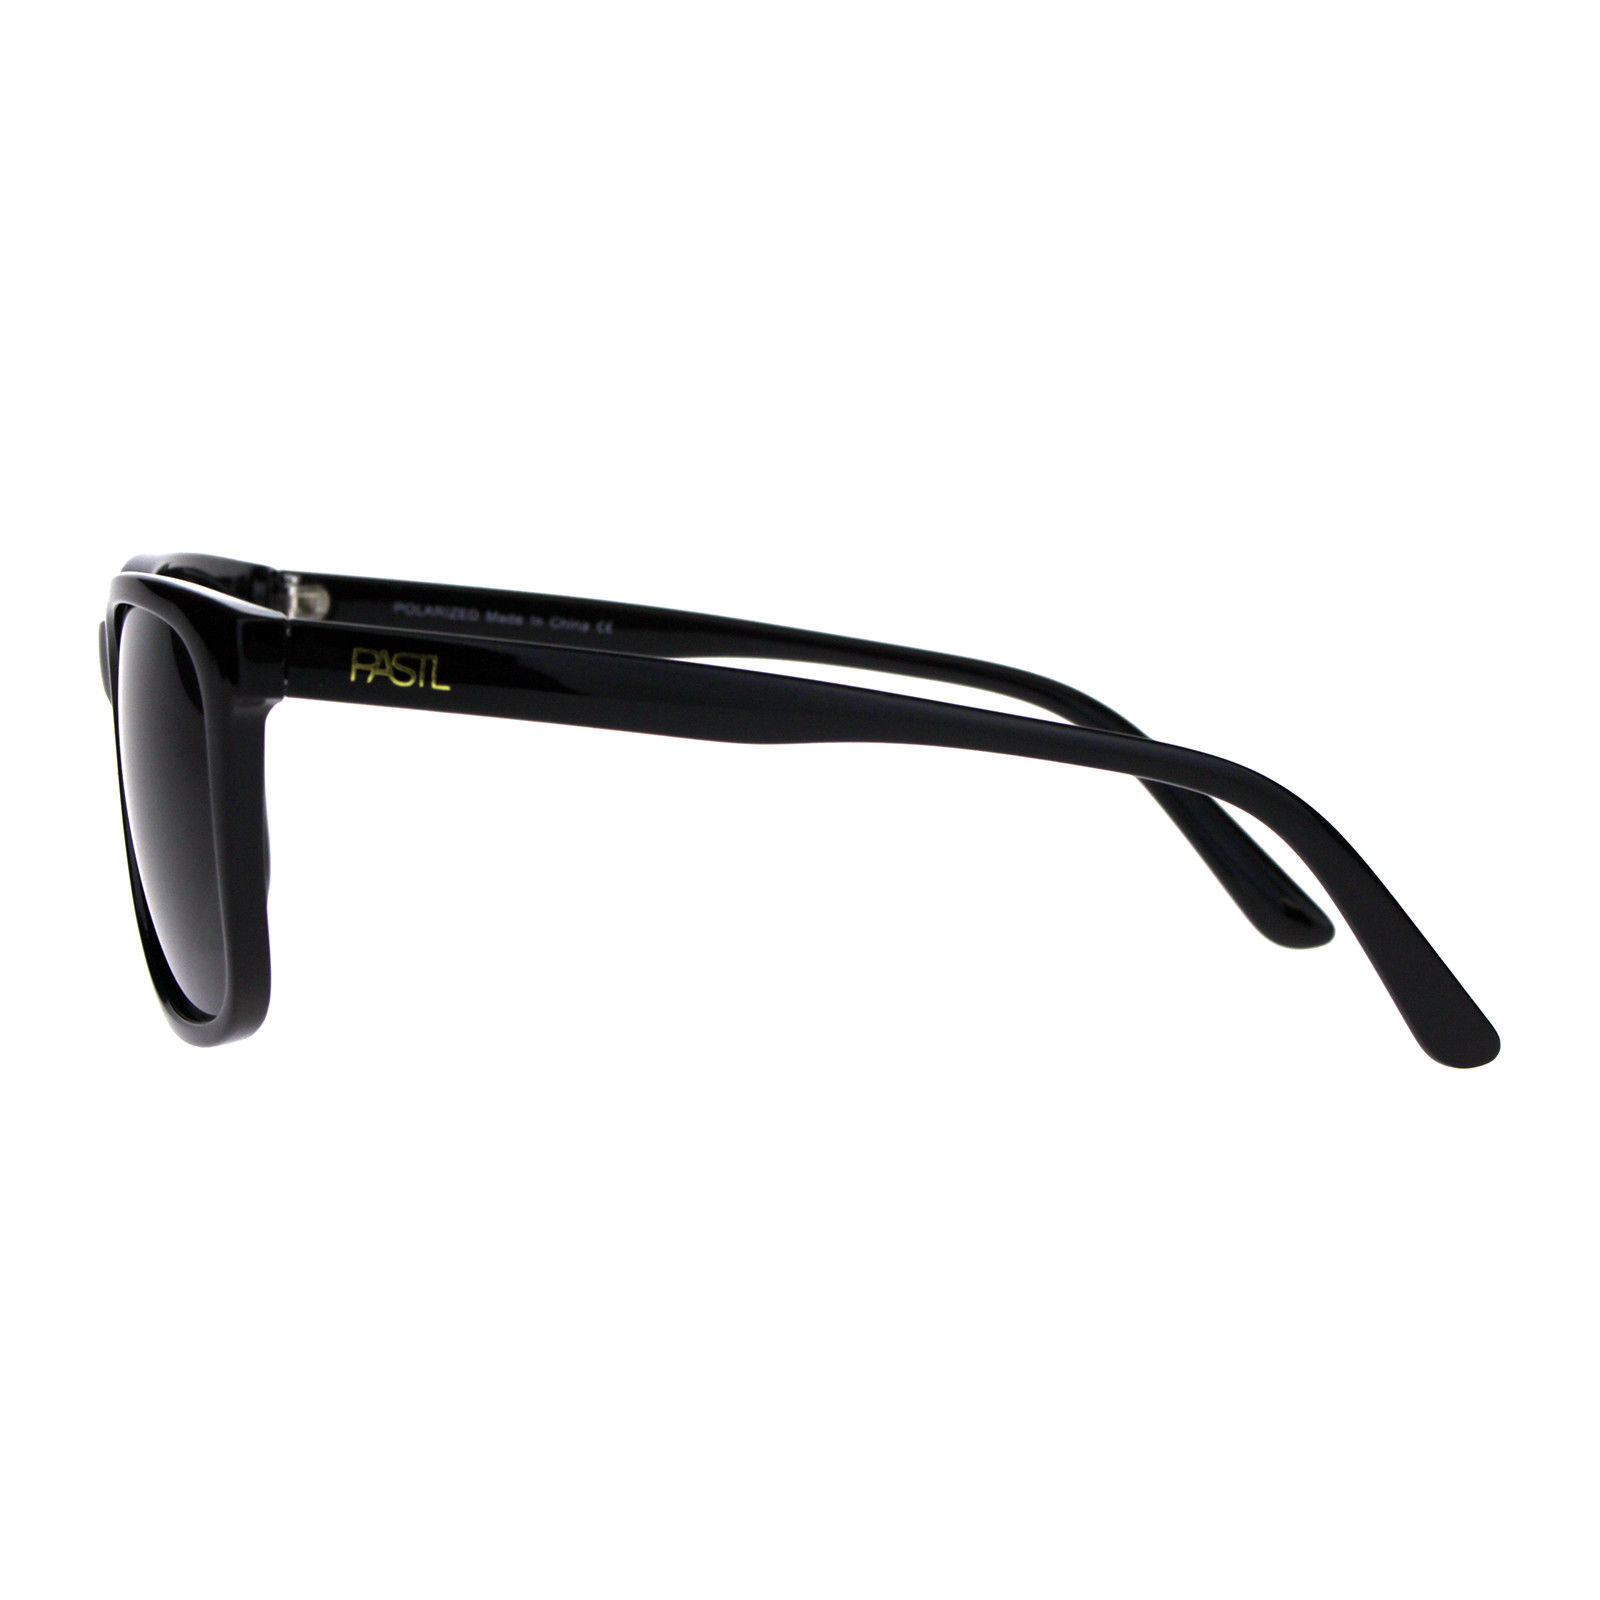 PASTL Sunglasses Polarized Lens Classics Square Designer Fashion Shades Black